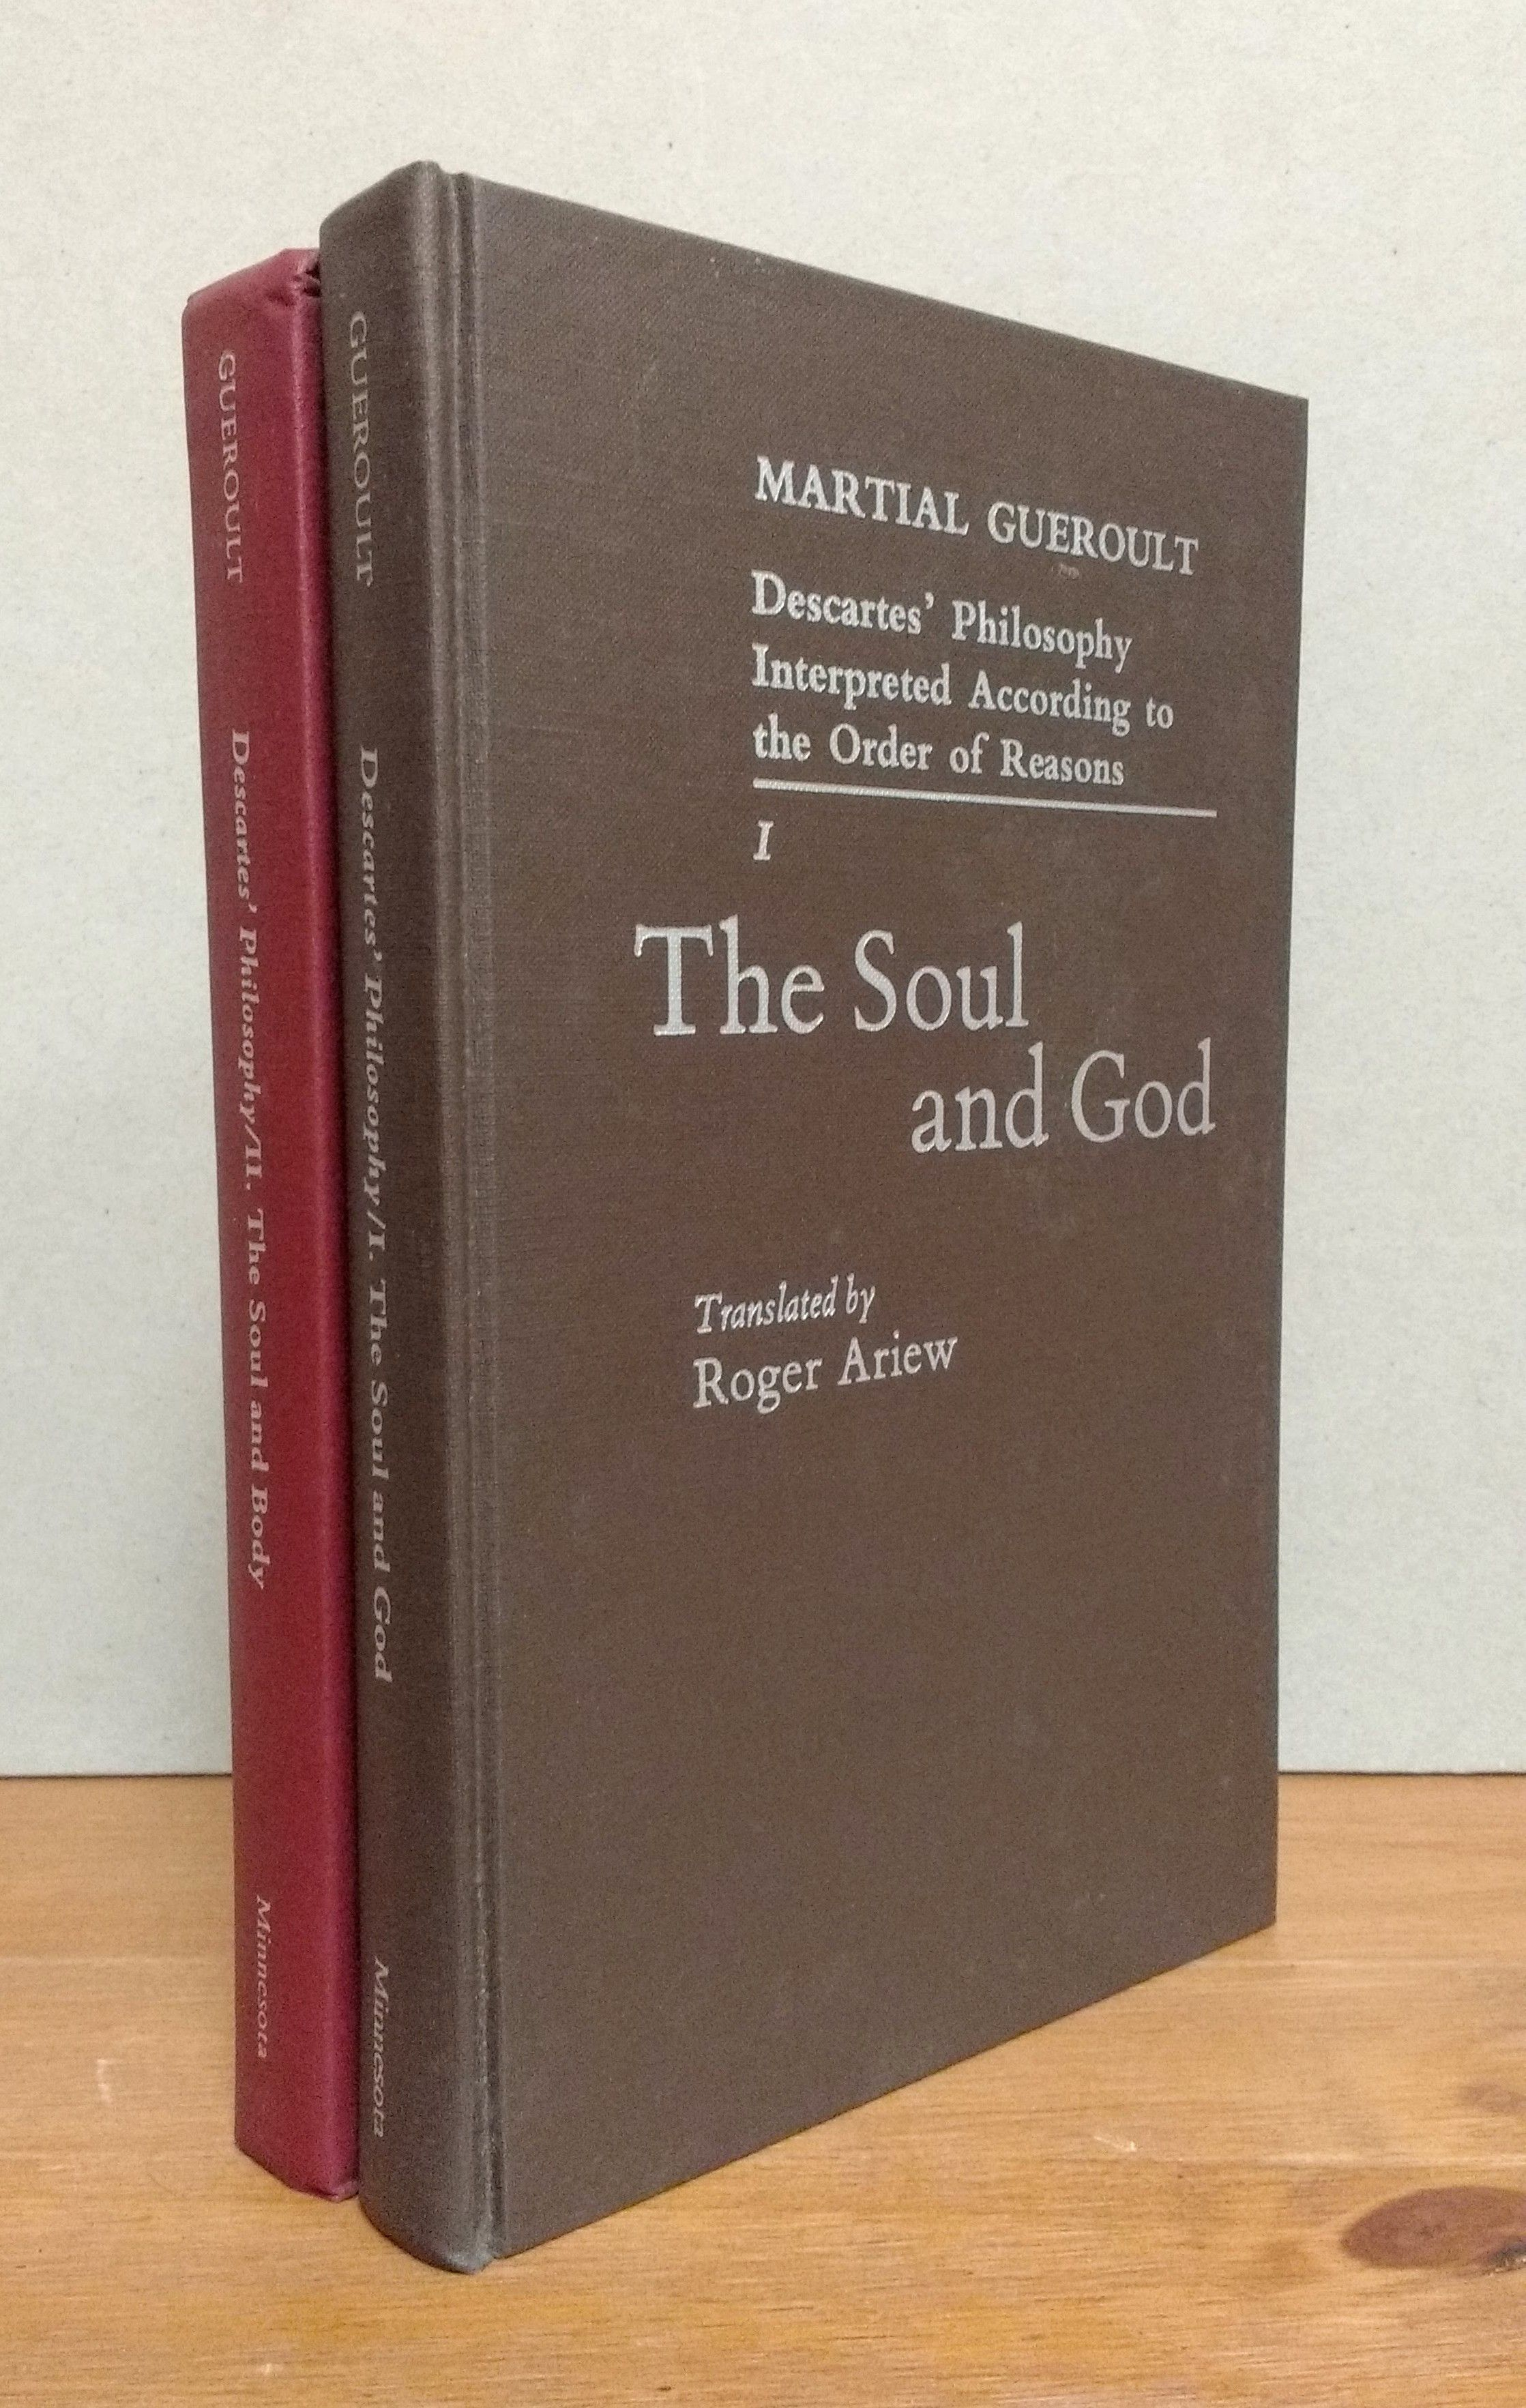 Descartes' Philosophy Interpreted According to the Order of Reasons: The Soul and God [and] The Soul and the Body (Volumes I & II), Gueroult, Martial; Roger Ariew [Translator]